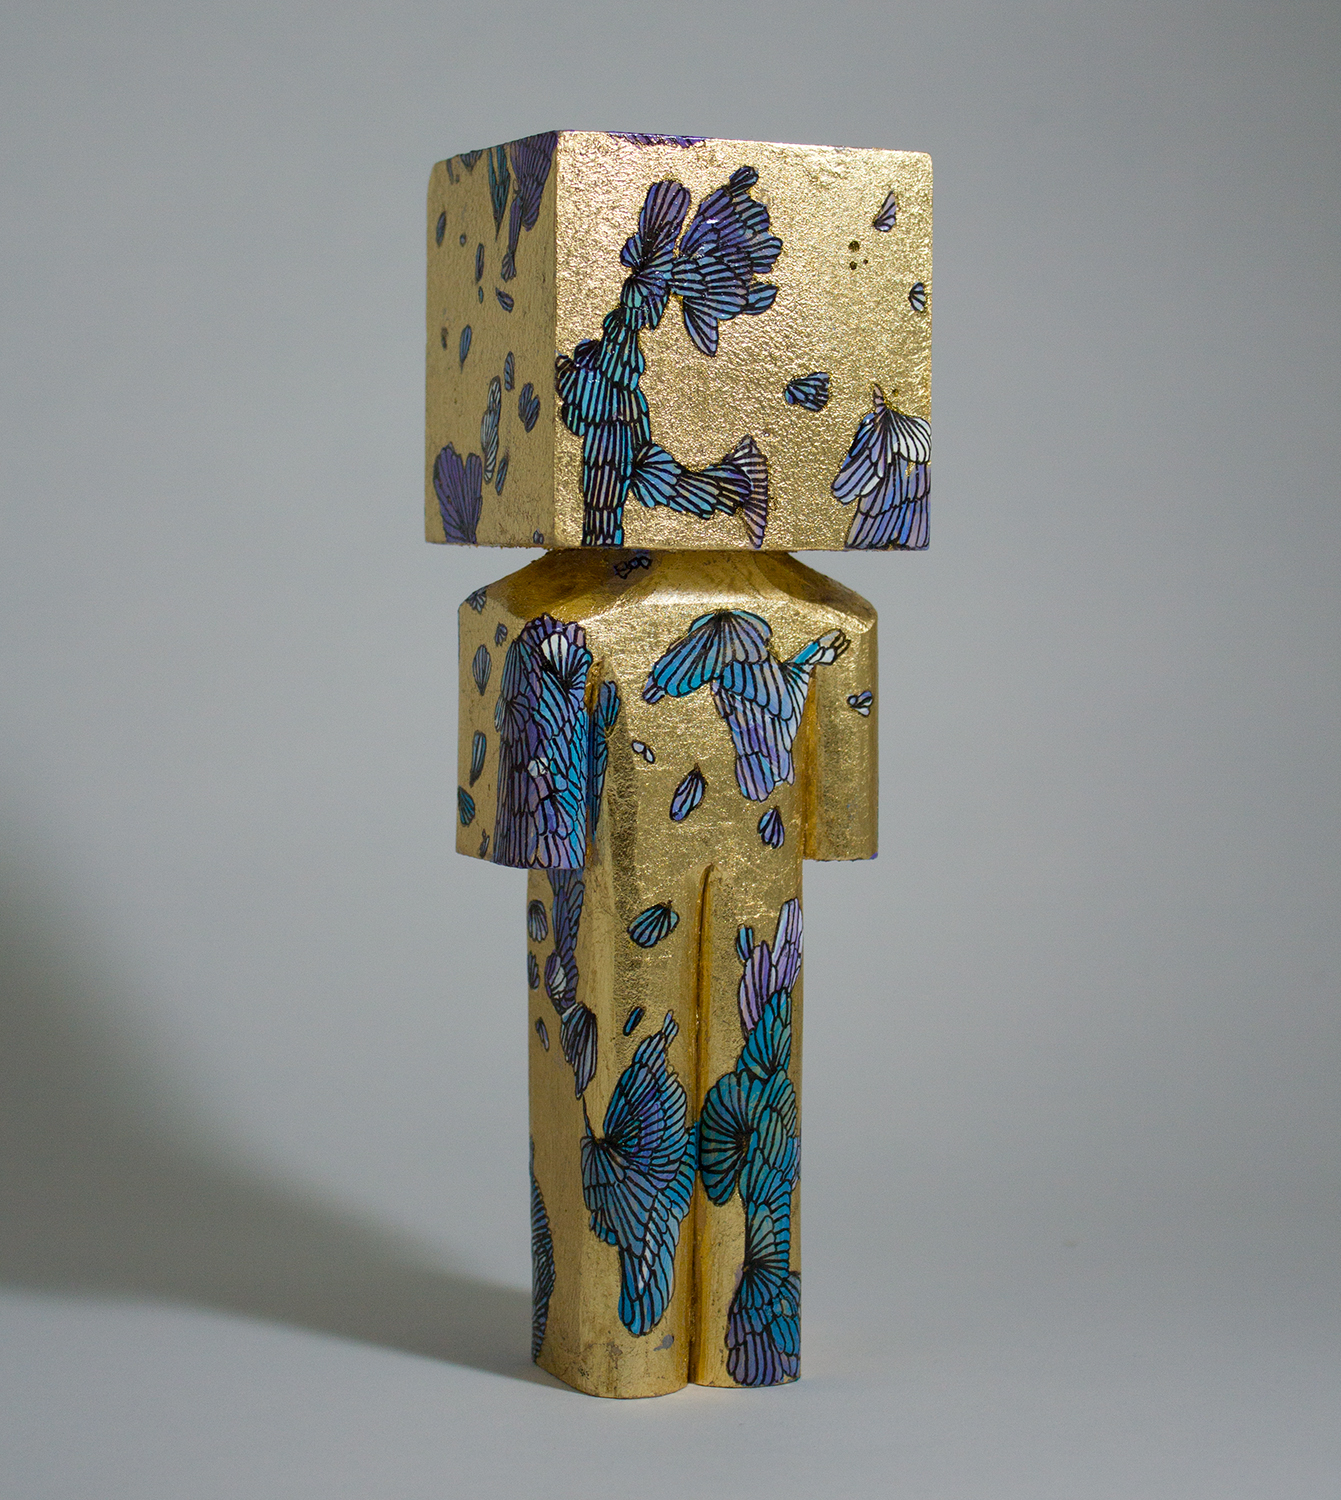 """""""Bathed in Gold"""" Collaboration with Lela Brunet. Basswood, acrylic, gold leaf, and ink. 7 x 2.25 x 2 inches. CSK 016G"""